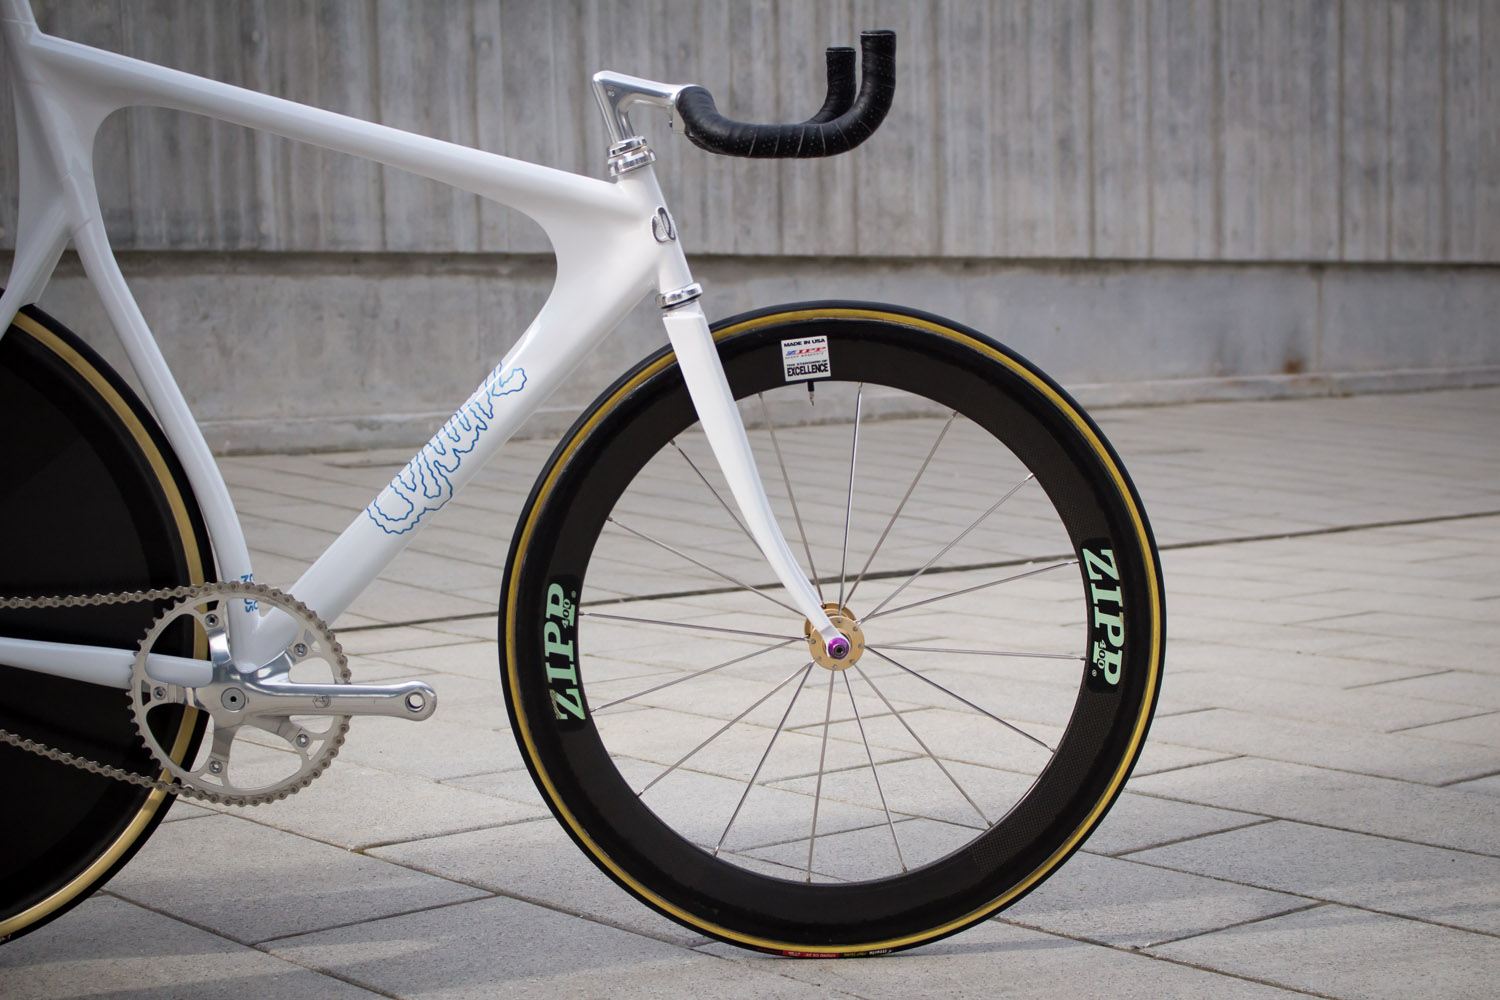 quirk_cycles_jack_track_pursuit_05.jpg